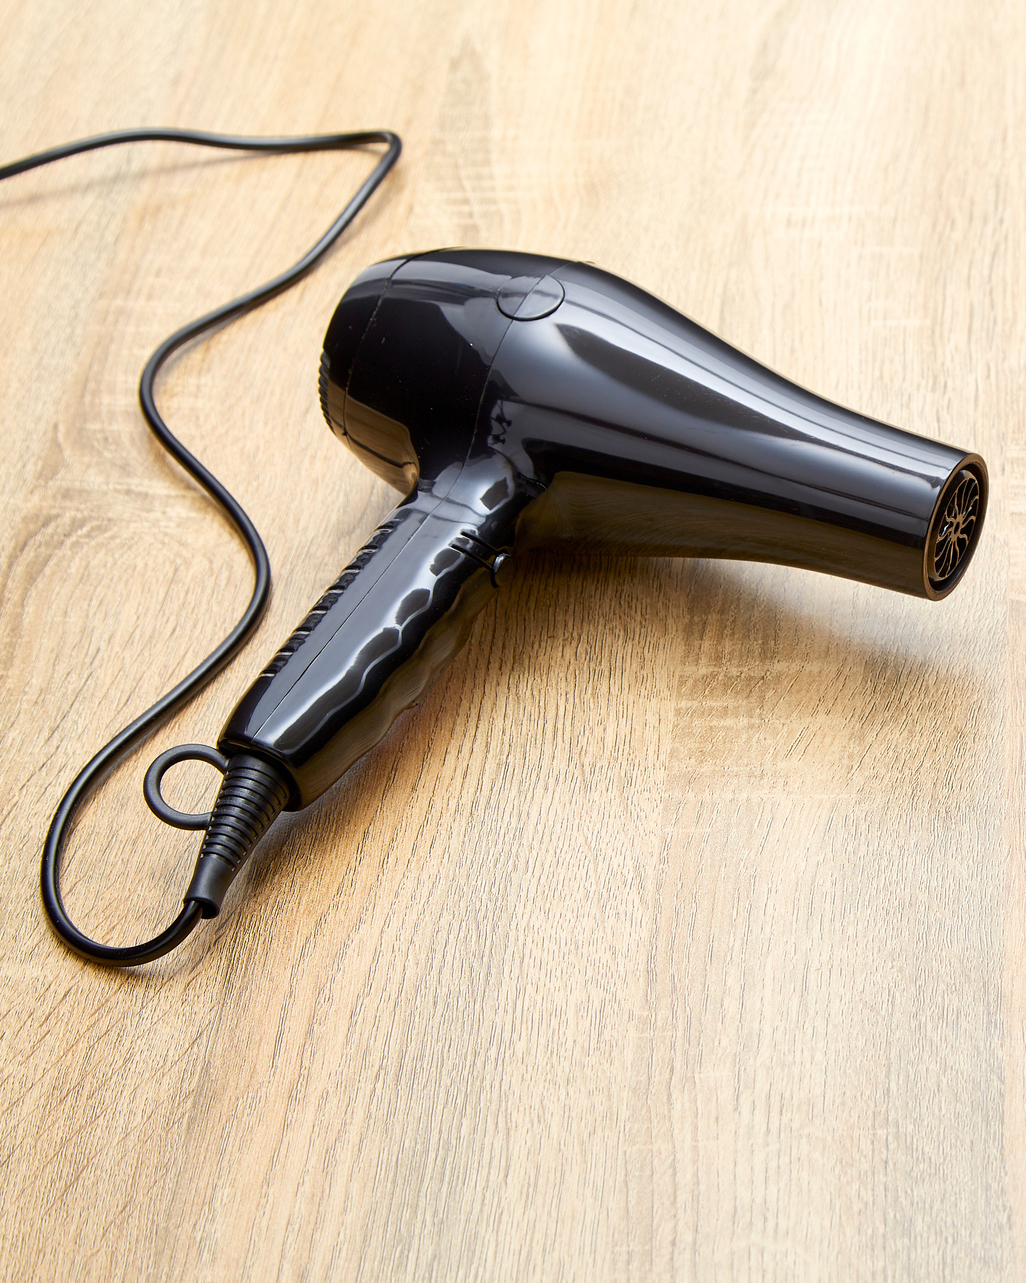 remove water stains from wood floor using hairdryer